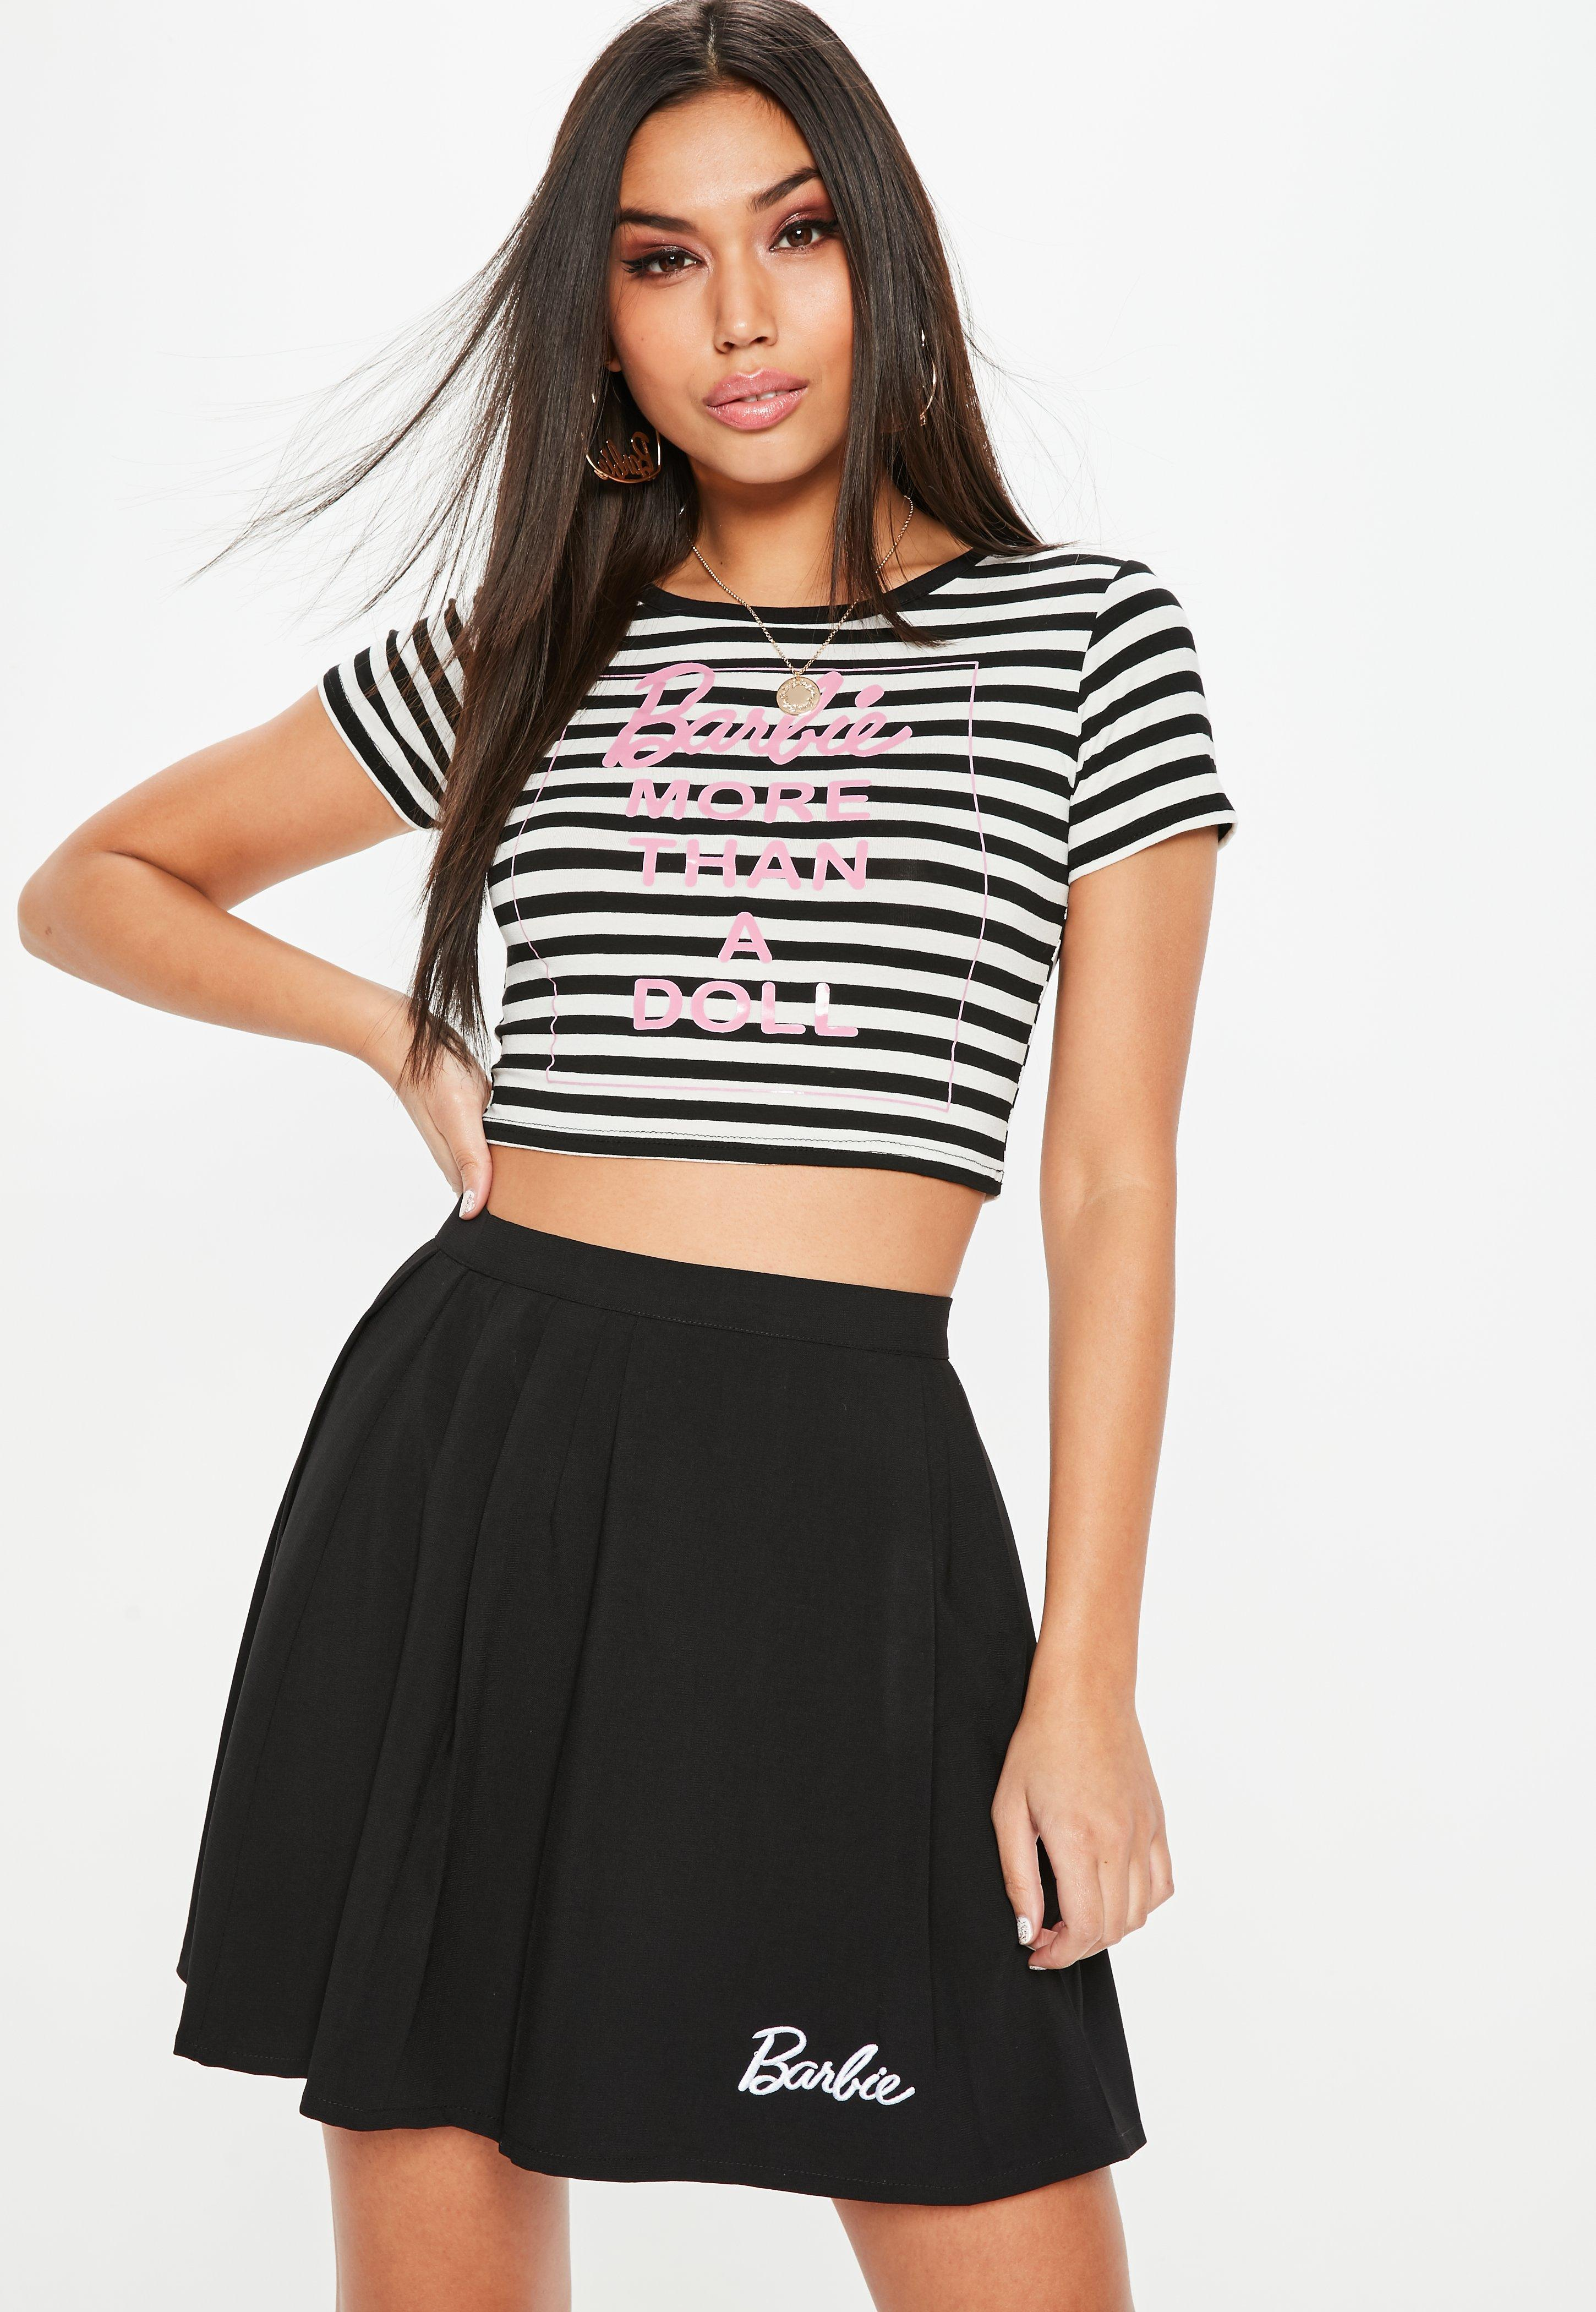 7f889a5d974 Lyst - Missguided Barbie X Black & White Striped Crop Top in Black